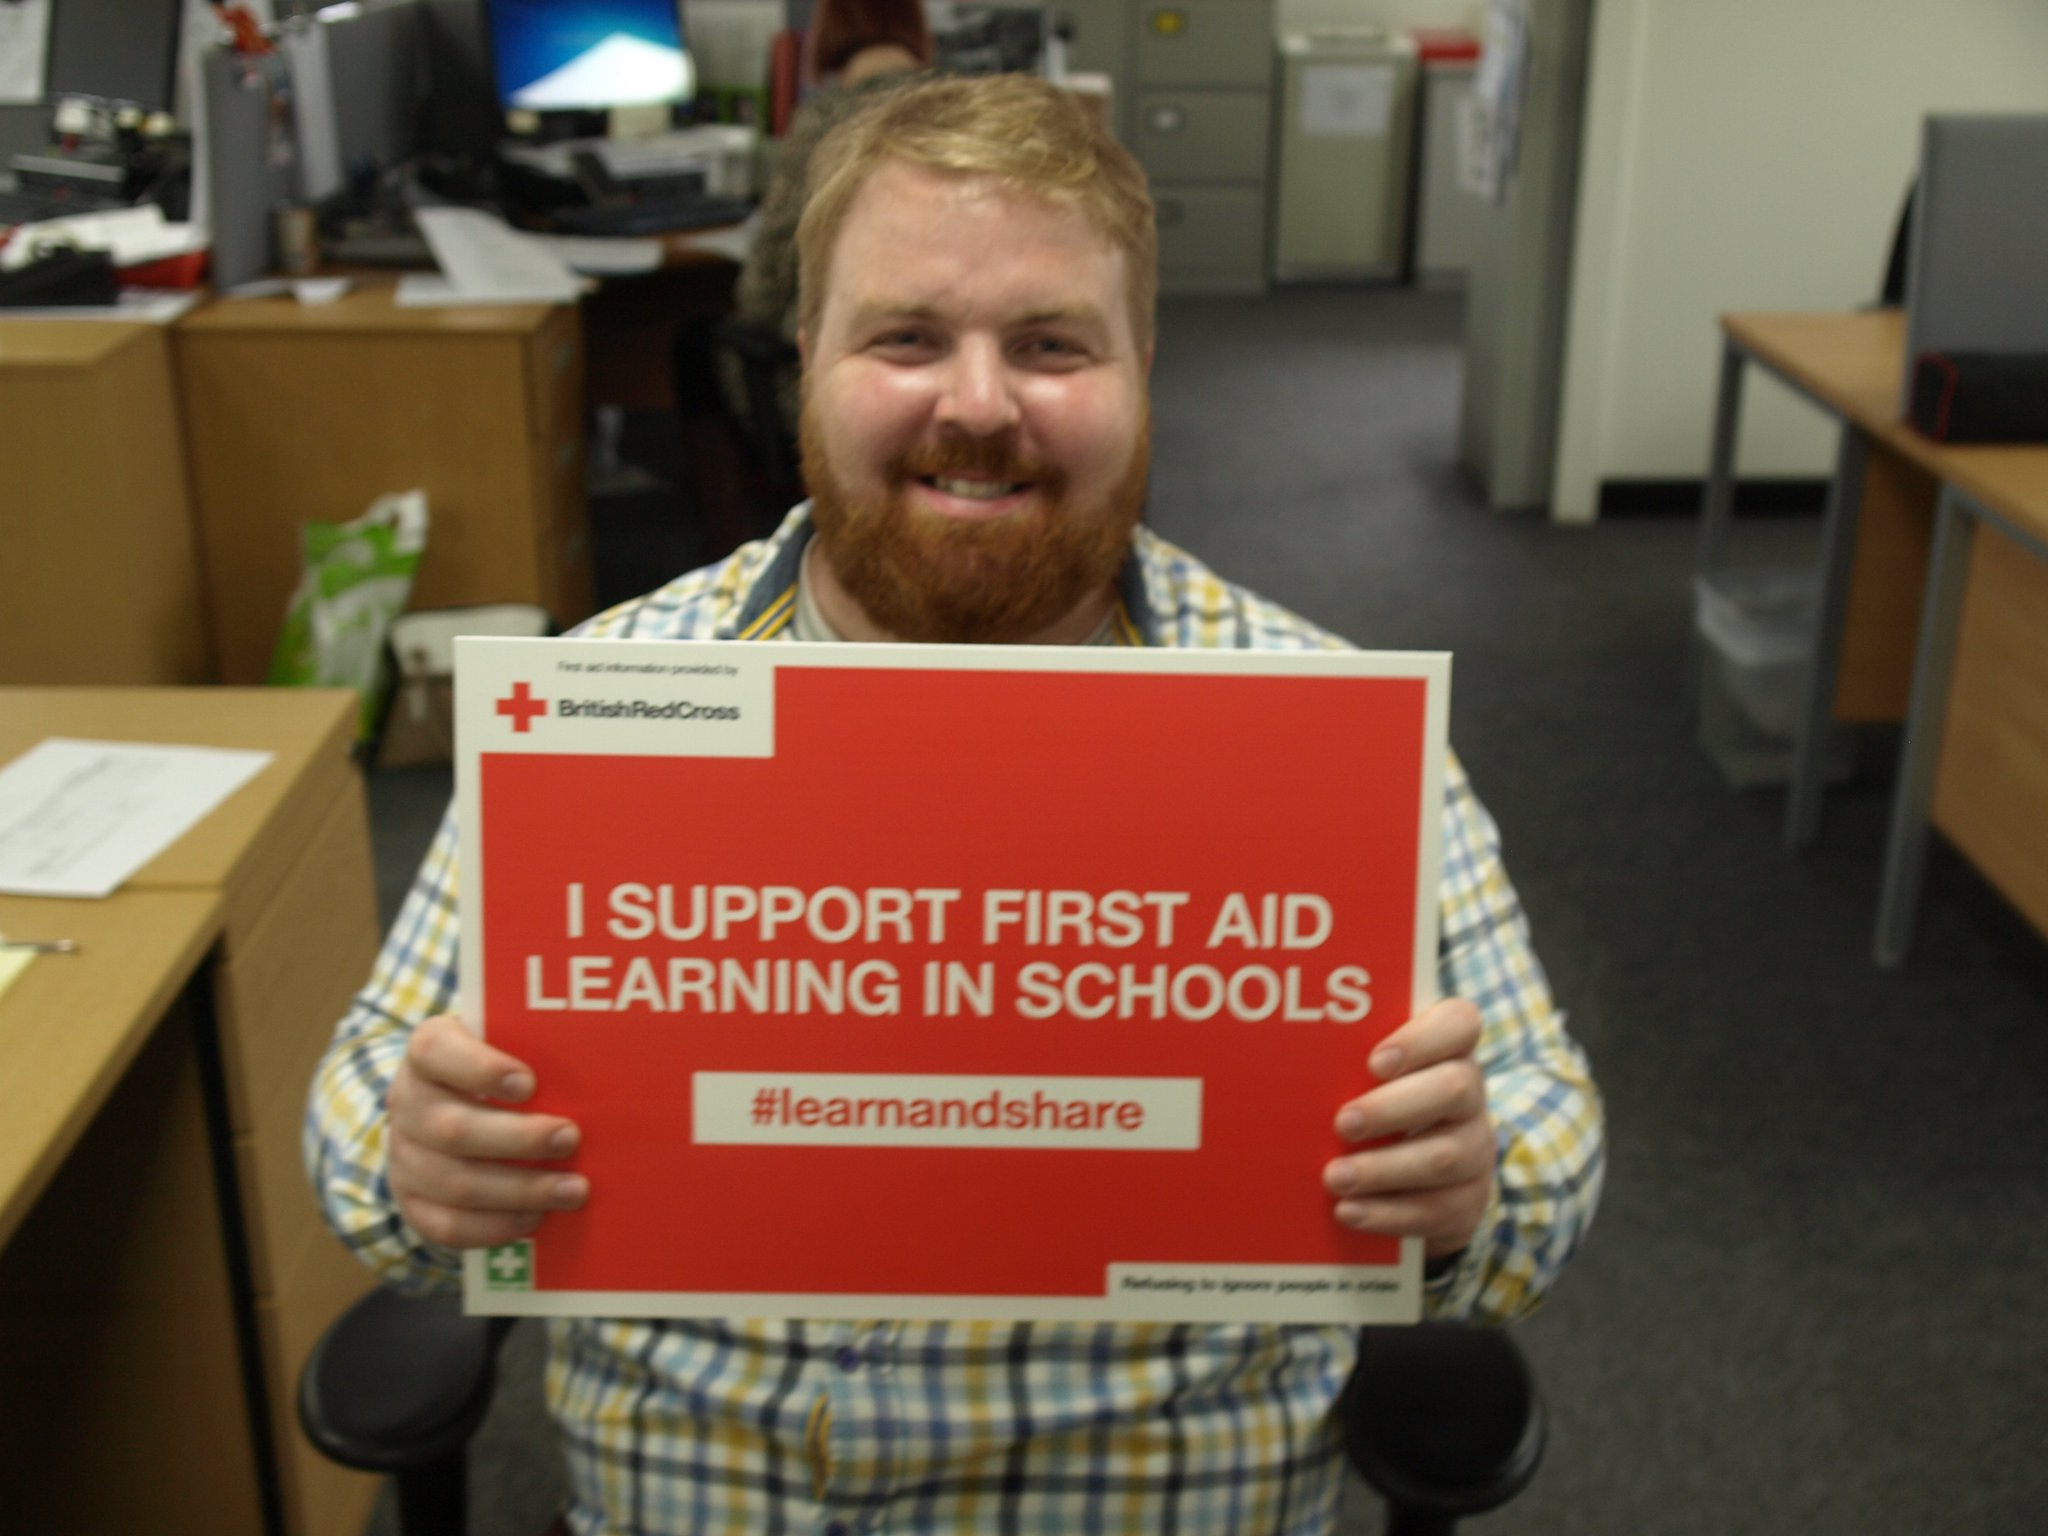 Rob Donovan supports first aid learning in schools in Wales. #lifesavingskills are essential so  #learnandshare with @RedCrossWales https://t.co/1FyfV7kXmW